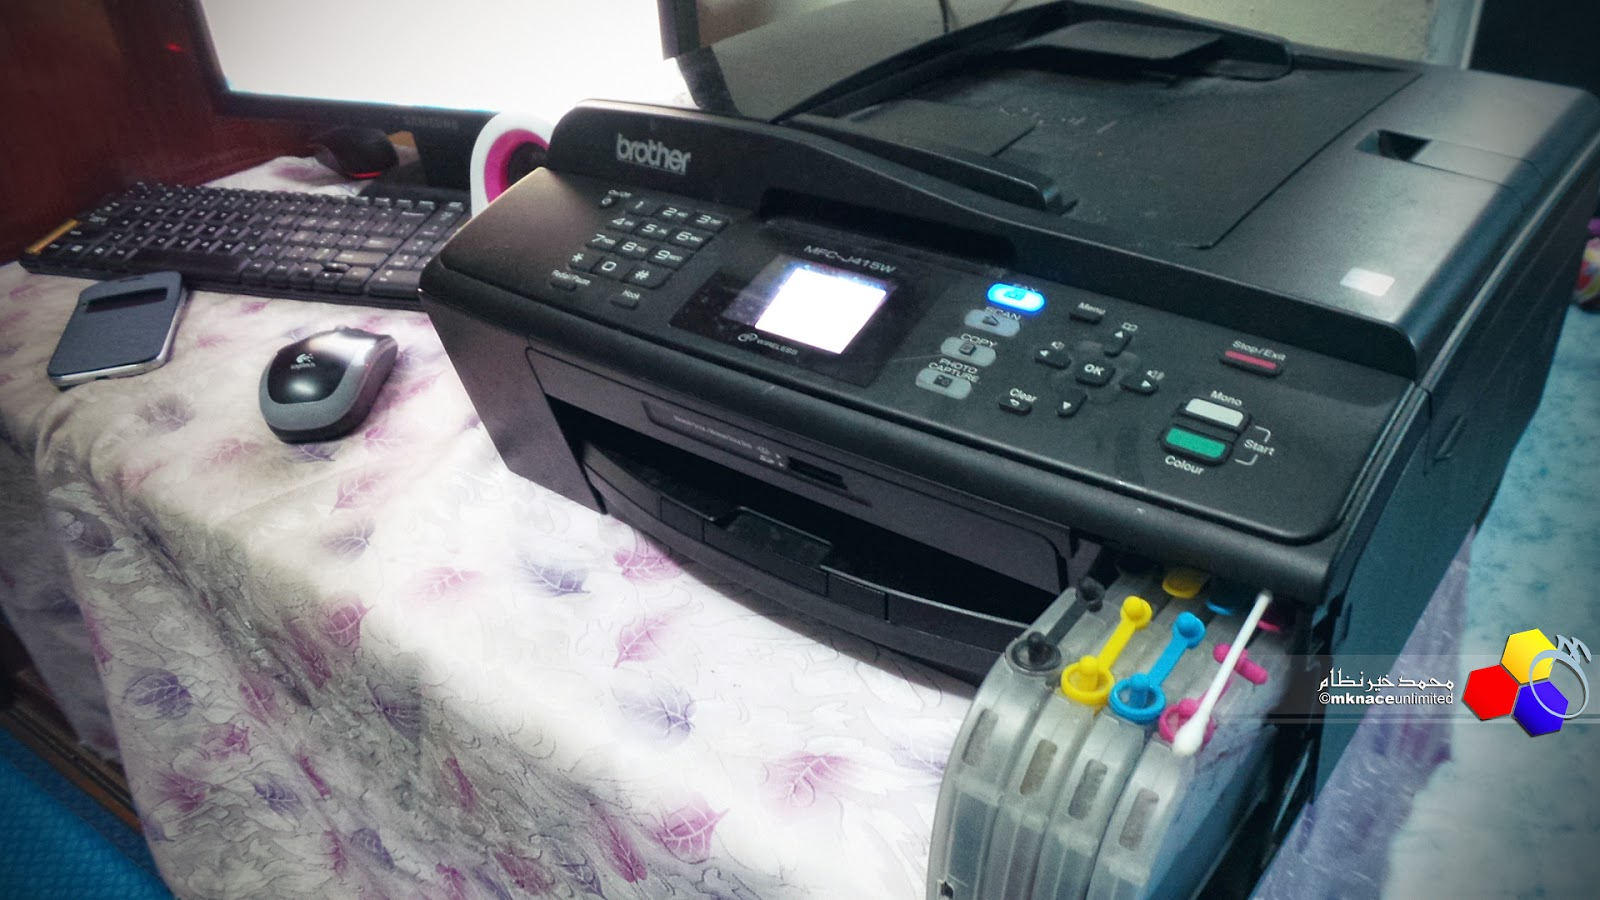 Printer Brother MFC J415W ku dah mula wat hal